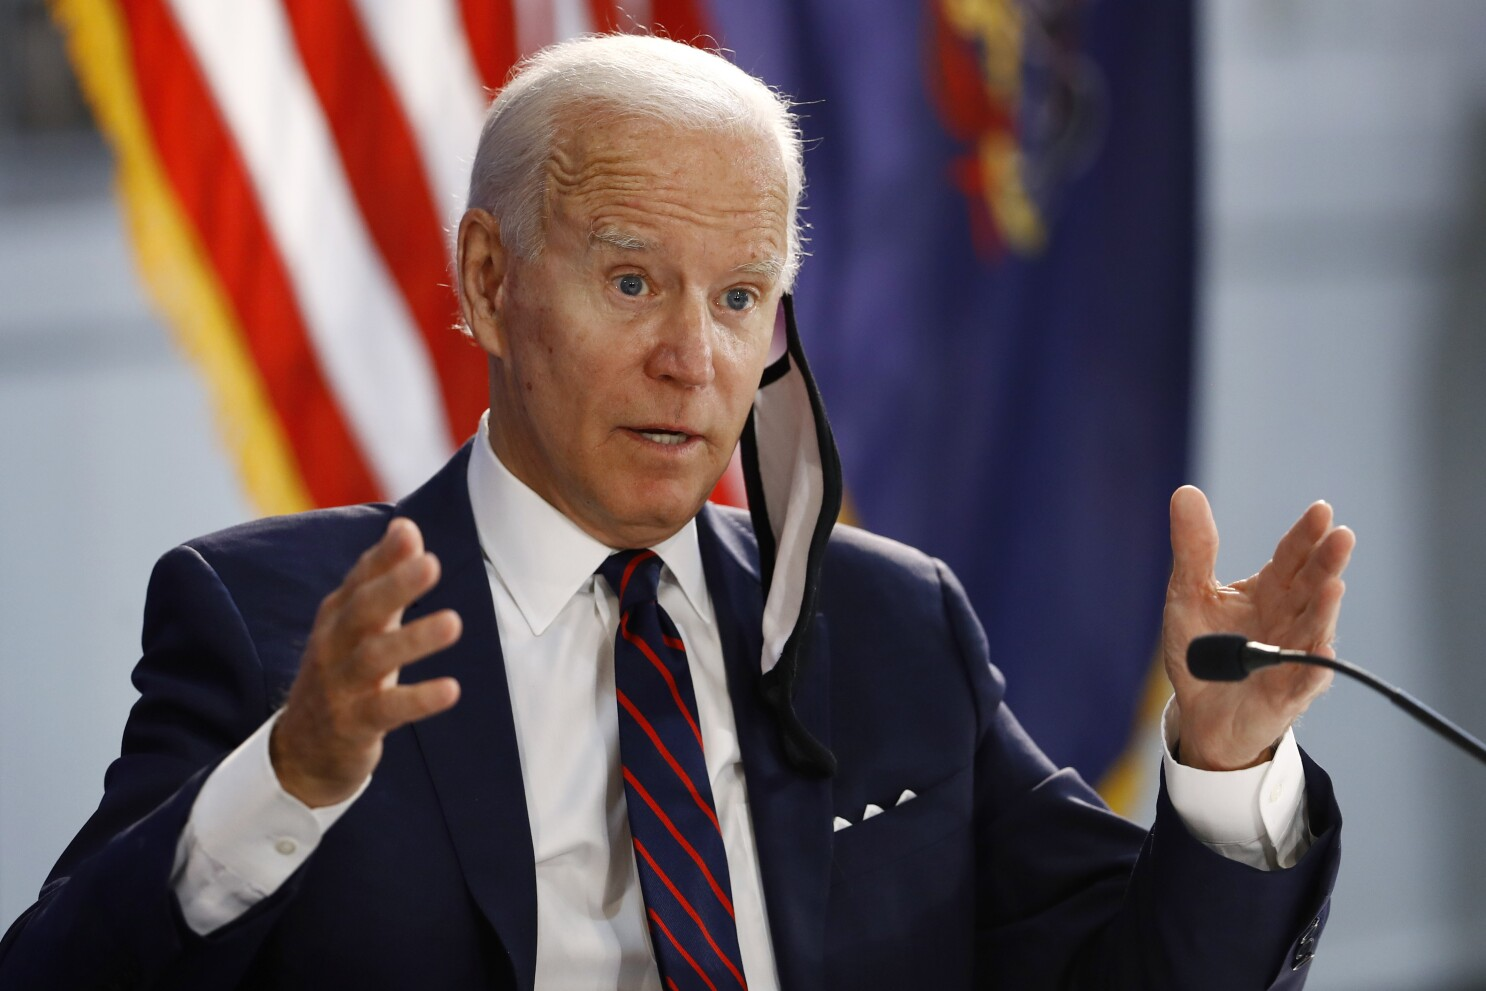 Biden S War Chest Swells As Trump Increasingly Alarms Donors Los Angeles Times